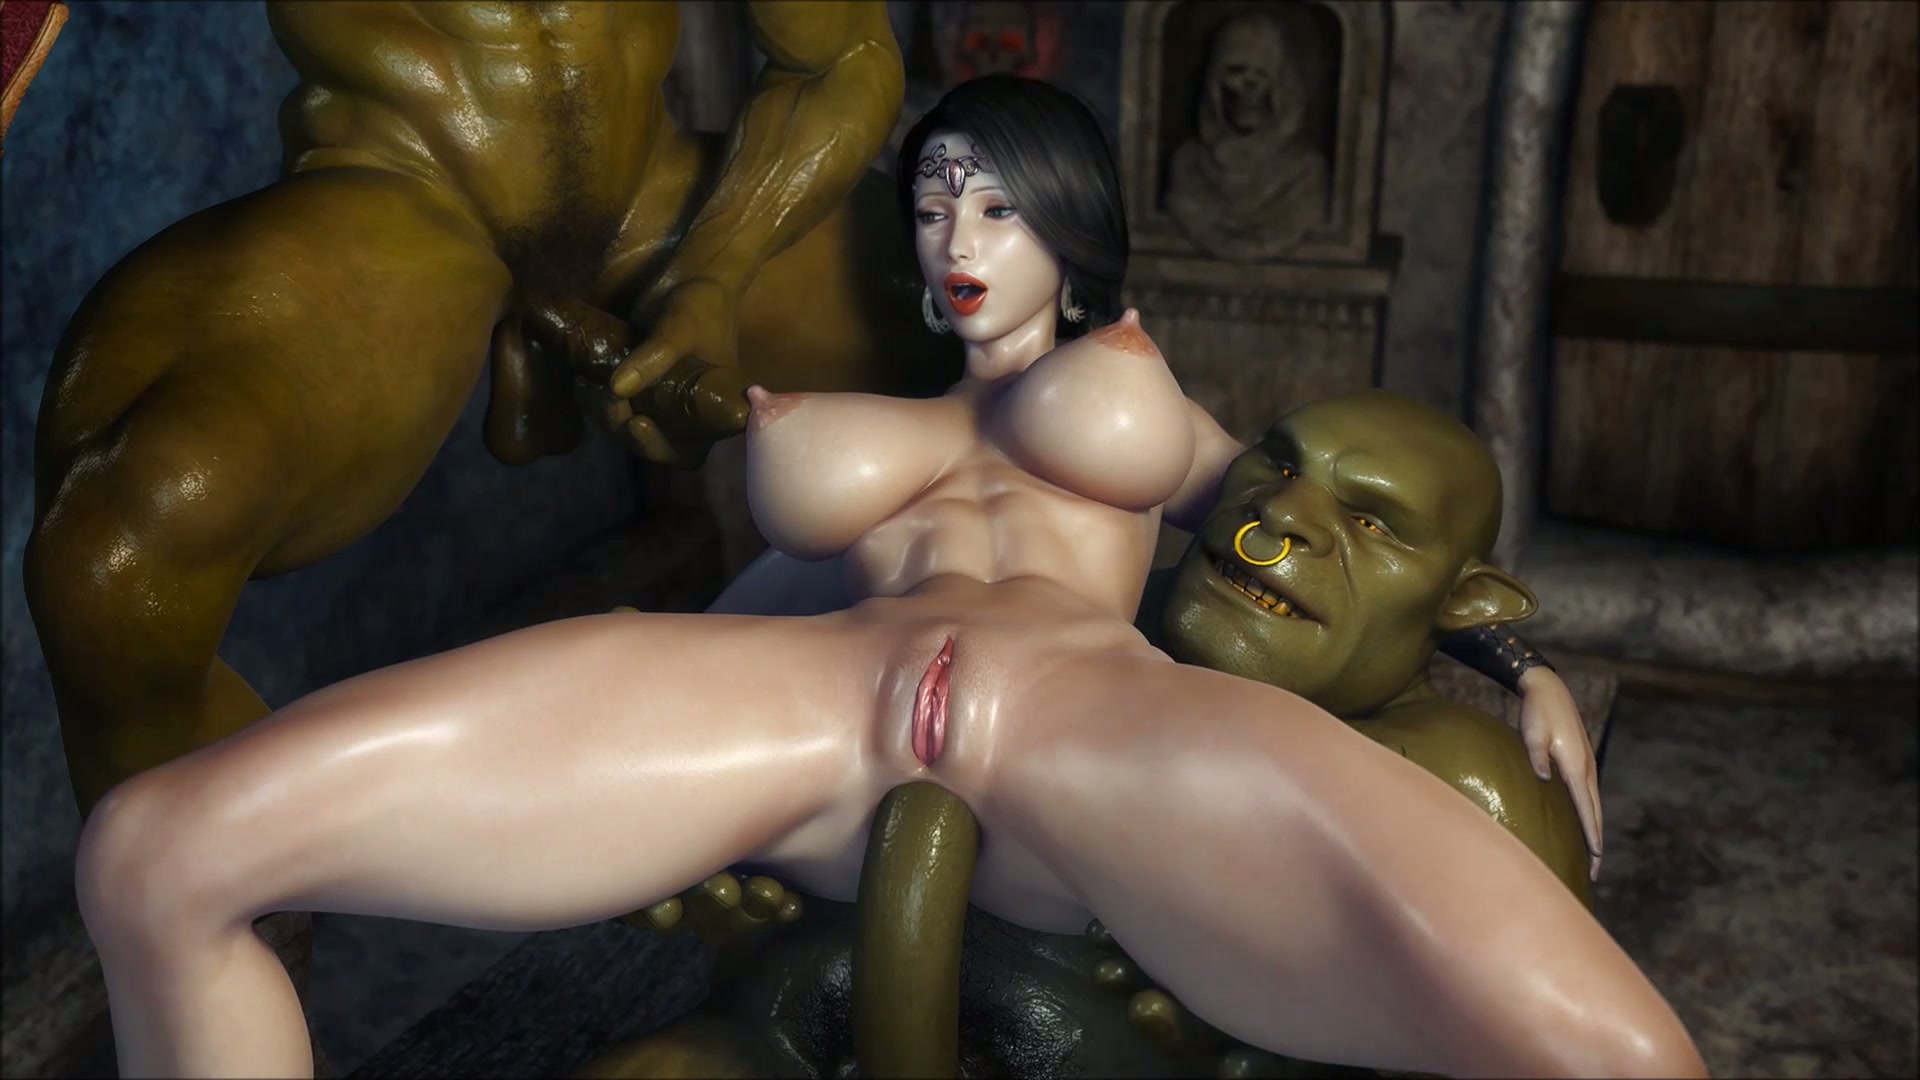 Creature and monster porn movies free adult scene